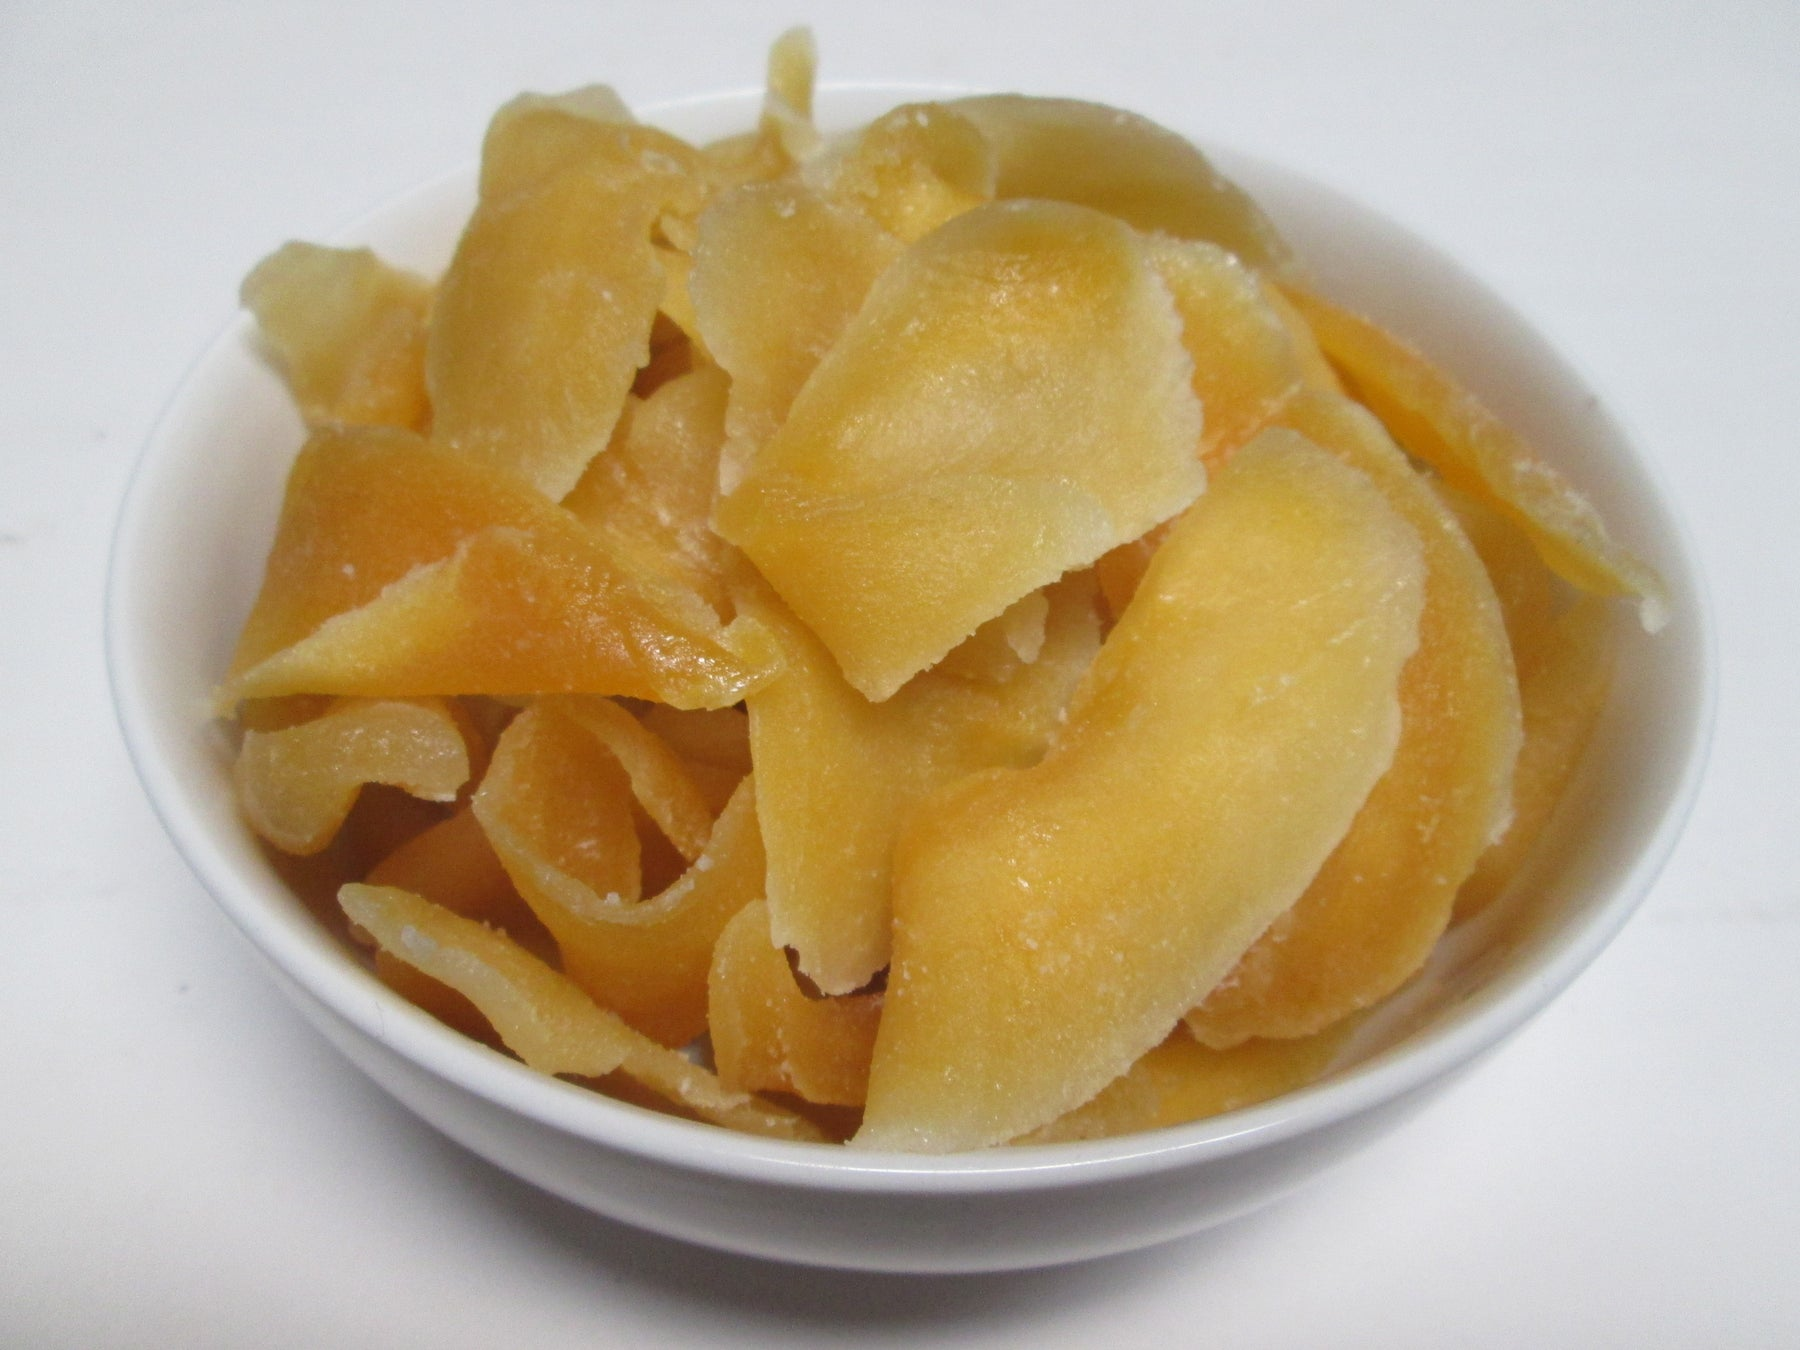 Dried Natural Mango Slices, 11 lbs